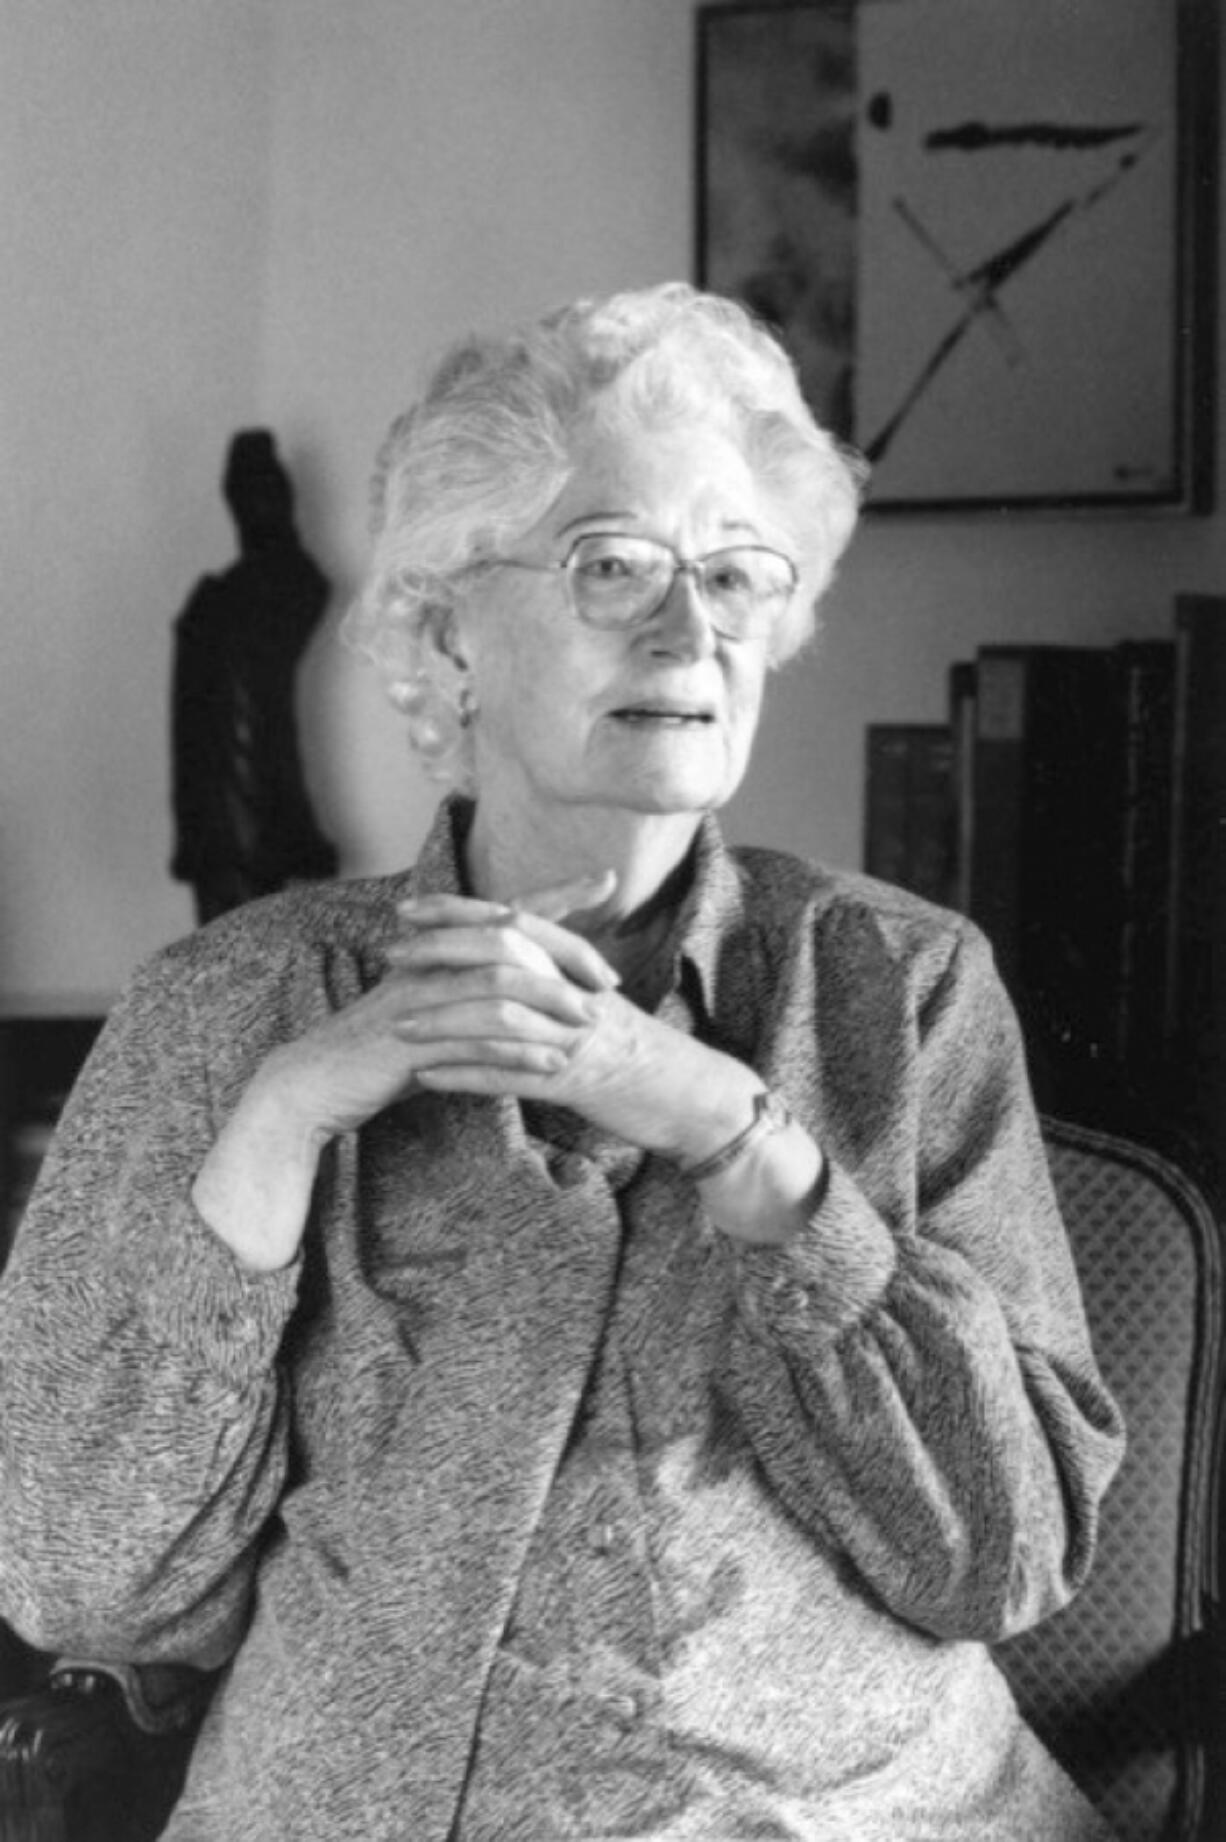 Born in Vancouver, Mary Barnard fled to New York City after graduating from Reed College in Portland. Although she struggled to write and work, she spent time among some of the most notable poets of 20th century. William Carlos William even made a pass at her, which she deflected. Later they became good friends. (Contributed by Special Collections and Archives, Eric V.